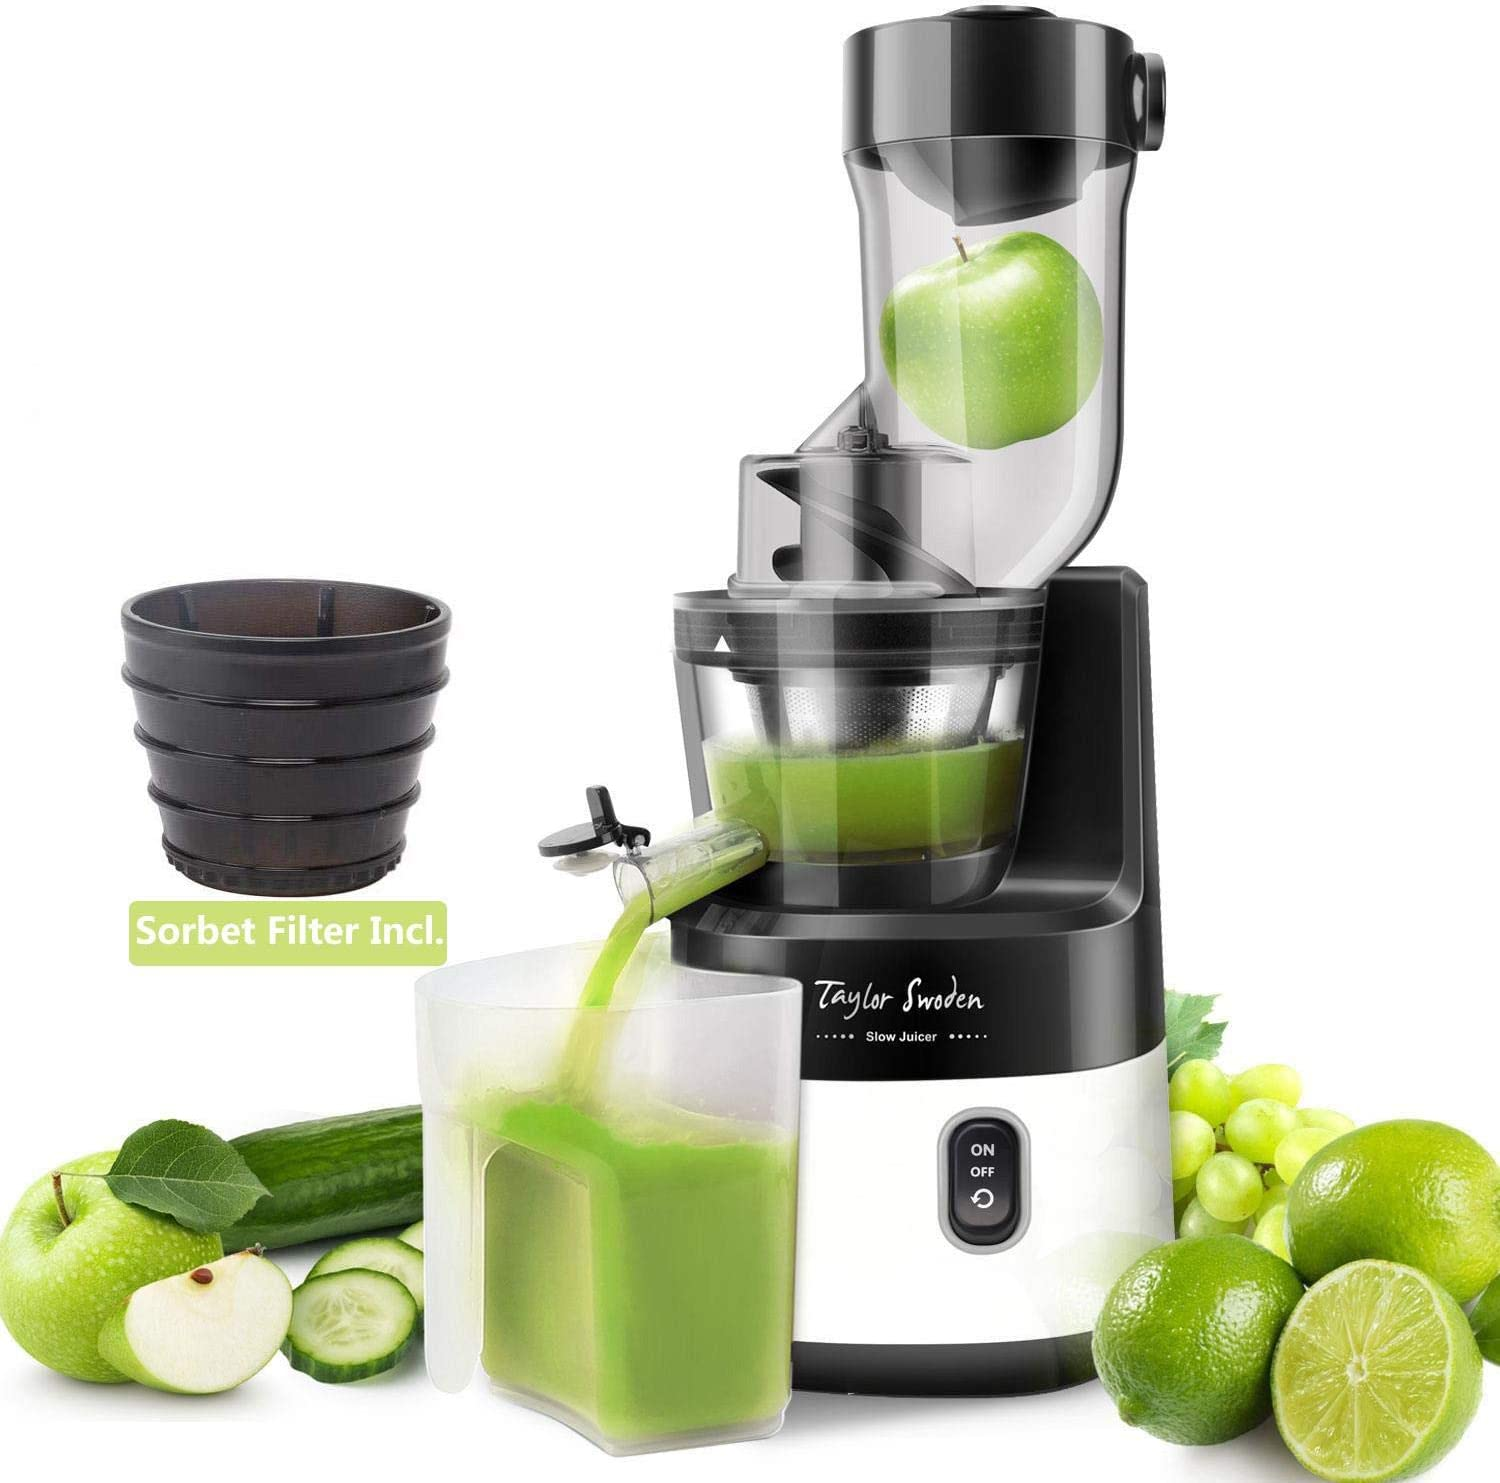 Juicer Machines, Taylor Swoden 200W Cold Press Juicer 3.4in Large Feed Chute Slow Masticating Juicer BPA-Free Juice Extractor with Quiet Motor, Easy to Clean, Recipes for Fruit, Vegetable and Sorbet